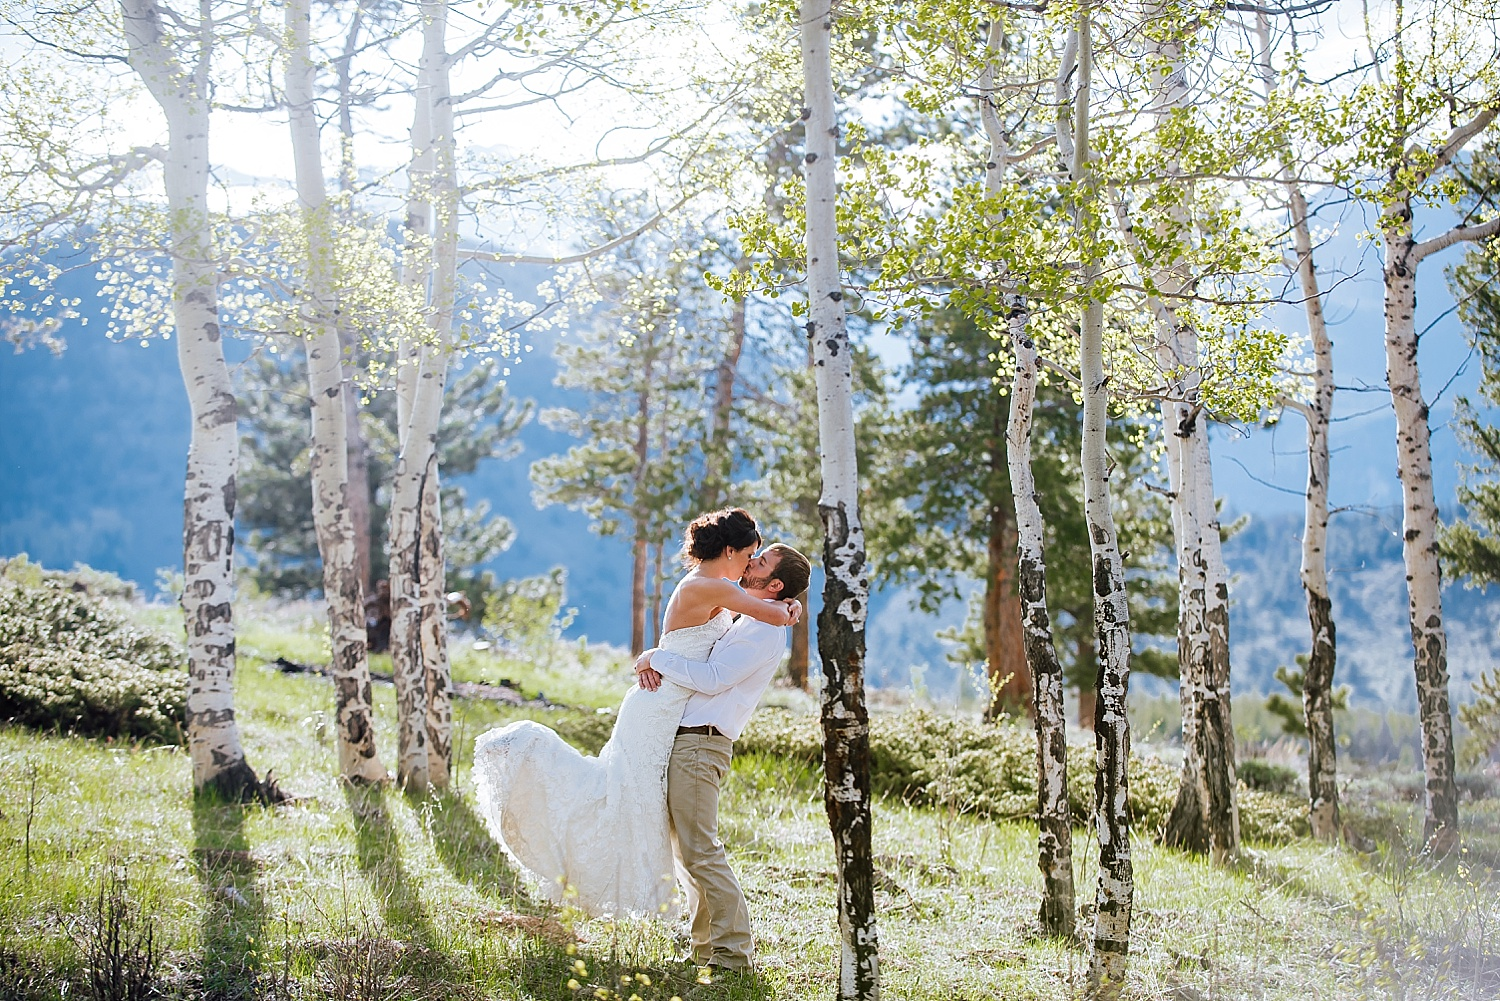 Wedding photos among the aspen trees in Estes Park Colorado - Rocky Mountain National Park is a wonderful wedding venue! Photo by Maddie Mae Photography